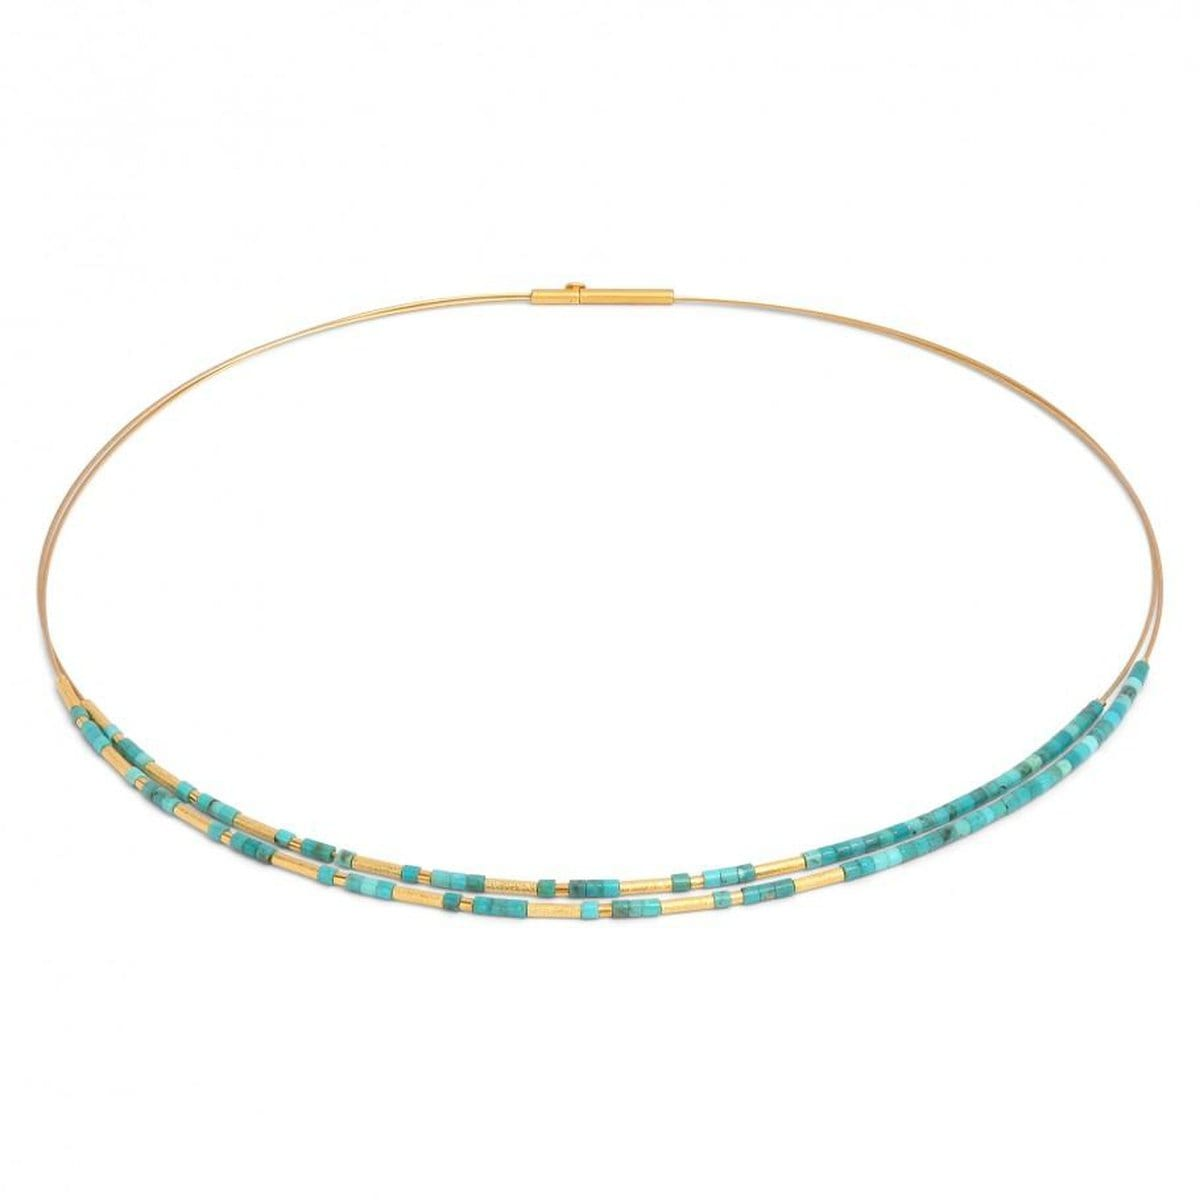 Clinni Blue Turquoise Necklace - 85234256-Bernd Wolf-Renee Taylor Gallery